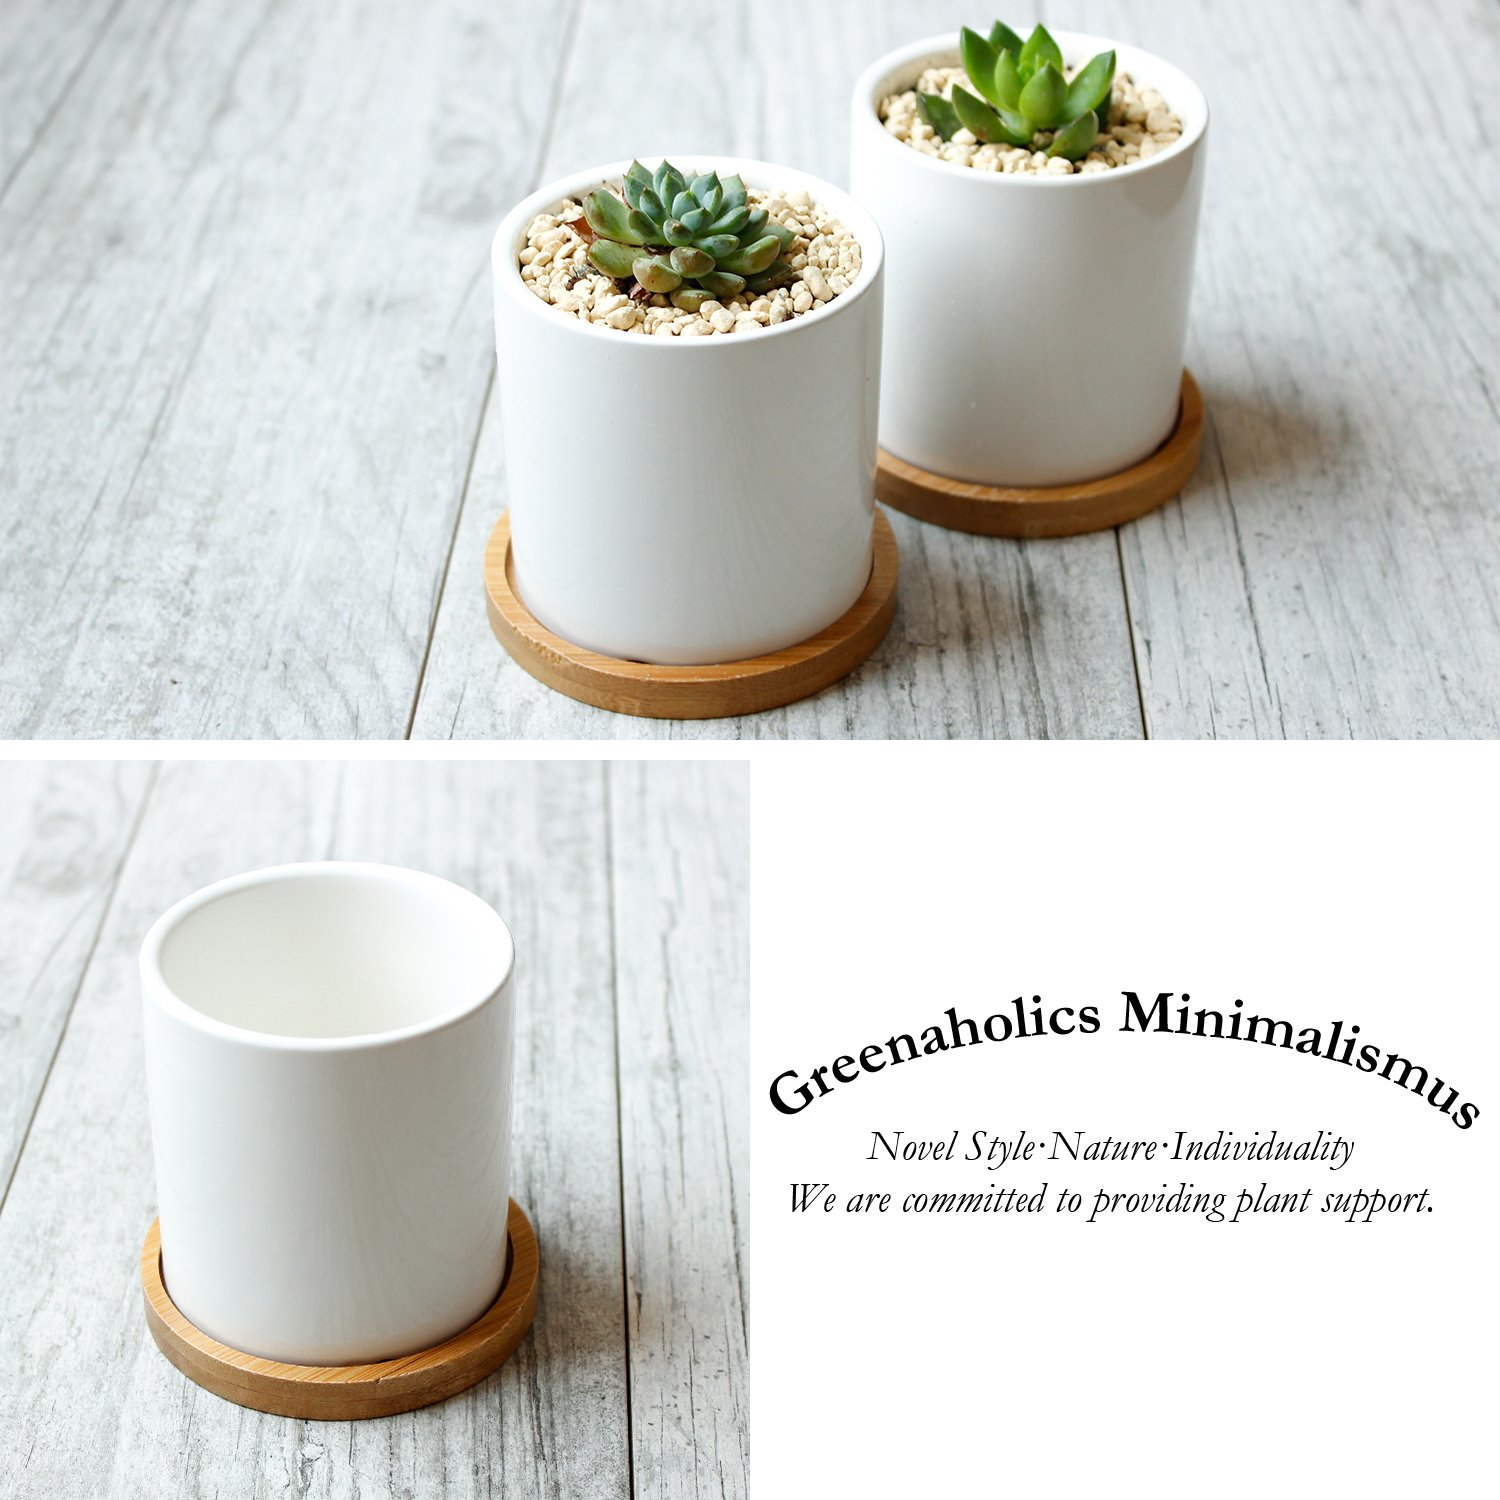 Greenaholics Succulent Plant Pots - 3 Inch Ceramic Cylindrical Containers, Small Cactus Planters, Flower Pots with Drainage Hole, Bamboo Tray, Set of 2, White by Greenaholics (Image #7)